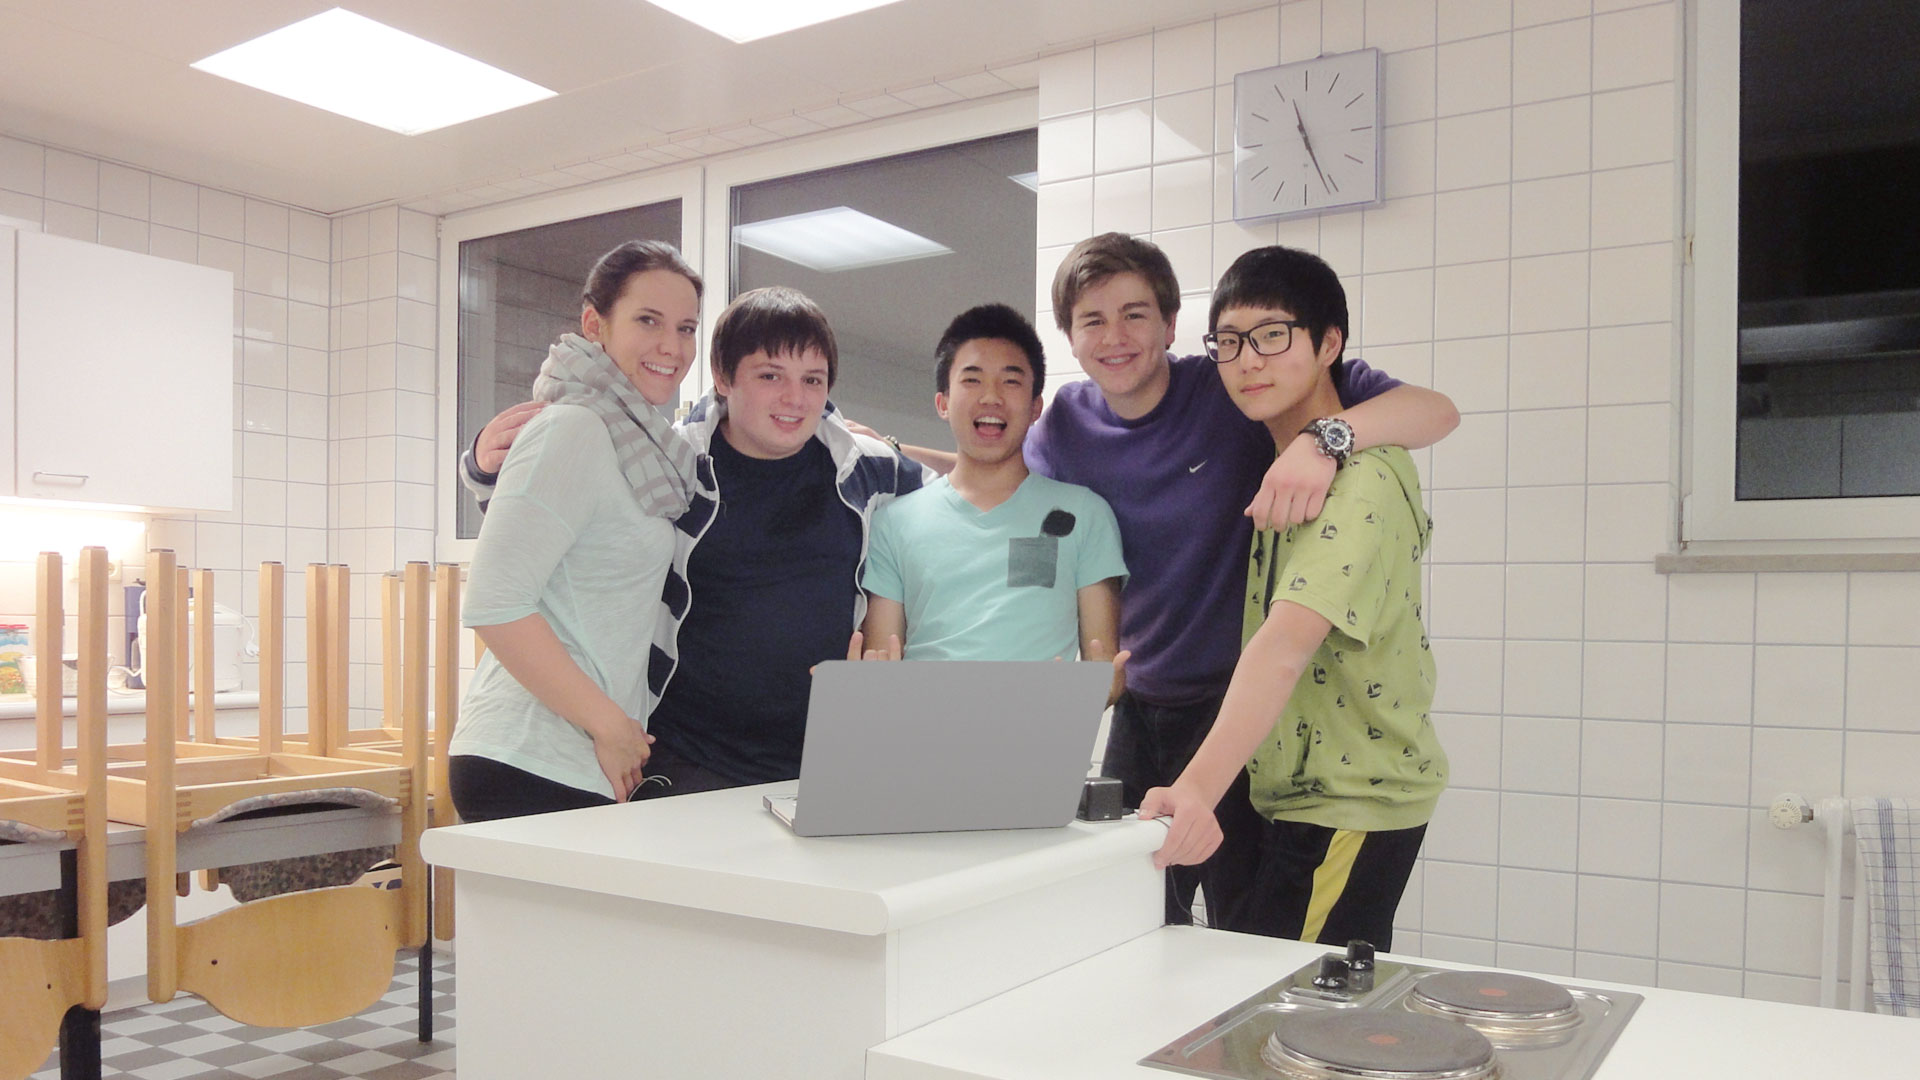 Students cook and bake in the experimental kitchen